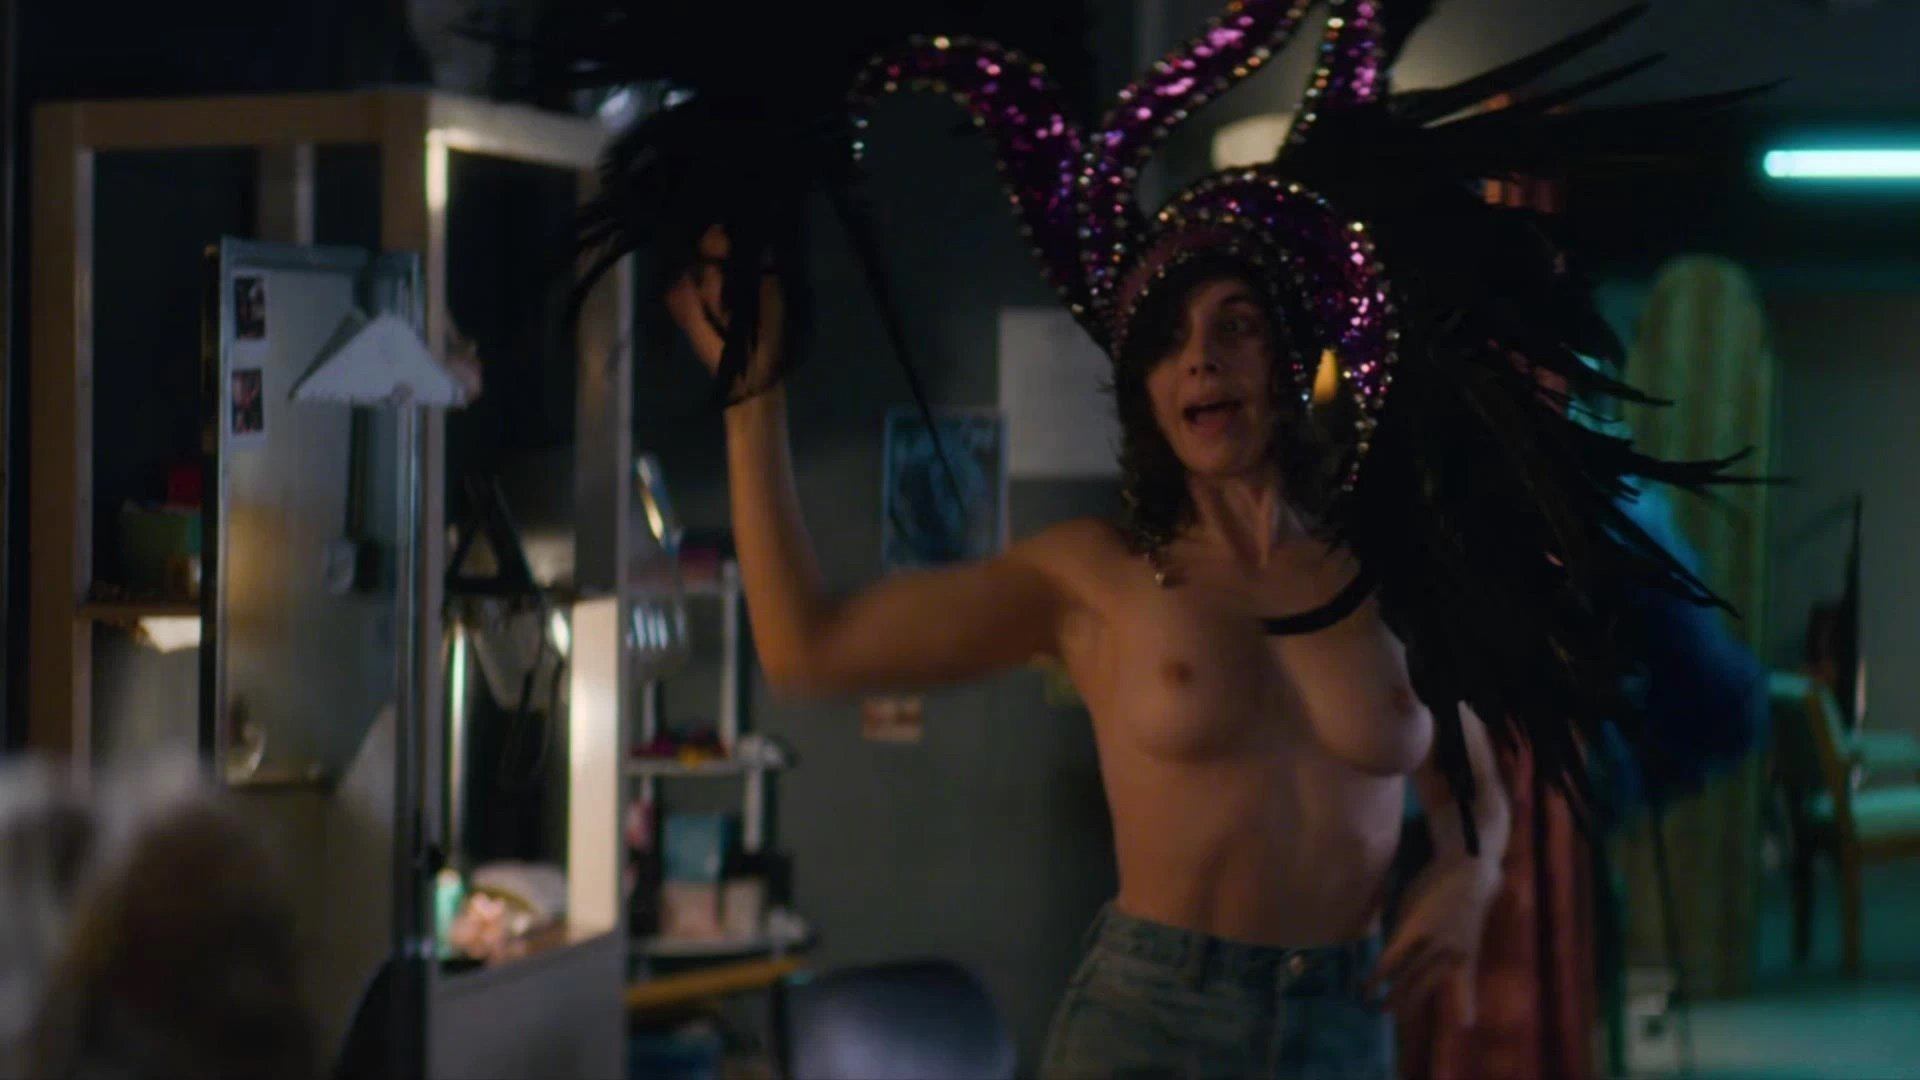 Alison Brie Glow Boobs alison brie nude – glow (4 pics + gif & video) | #thefappening